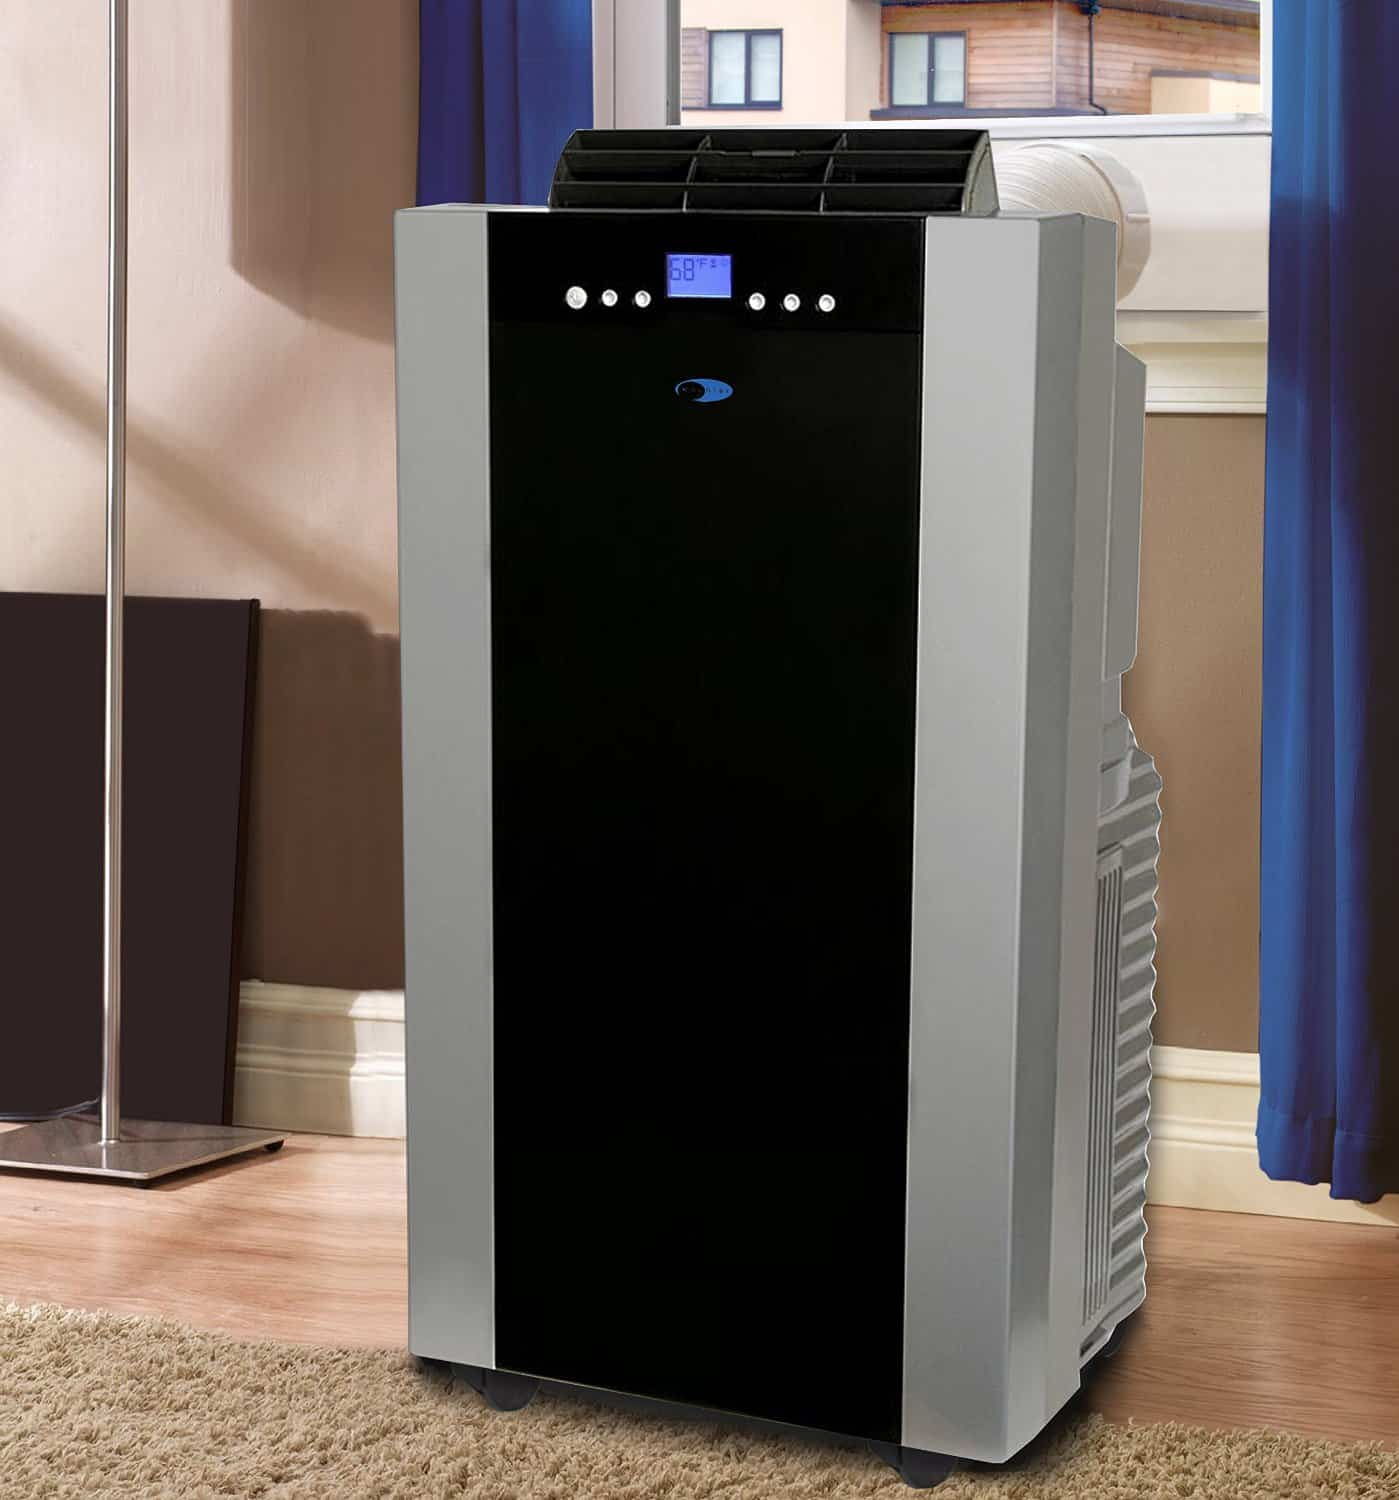 Best Whynter 14,000 BTU Dual Hose Portable Air Conditioner